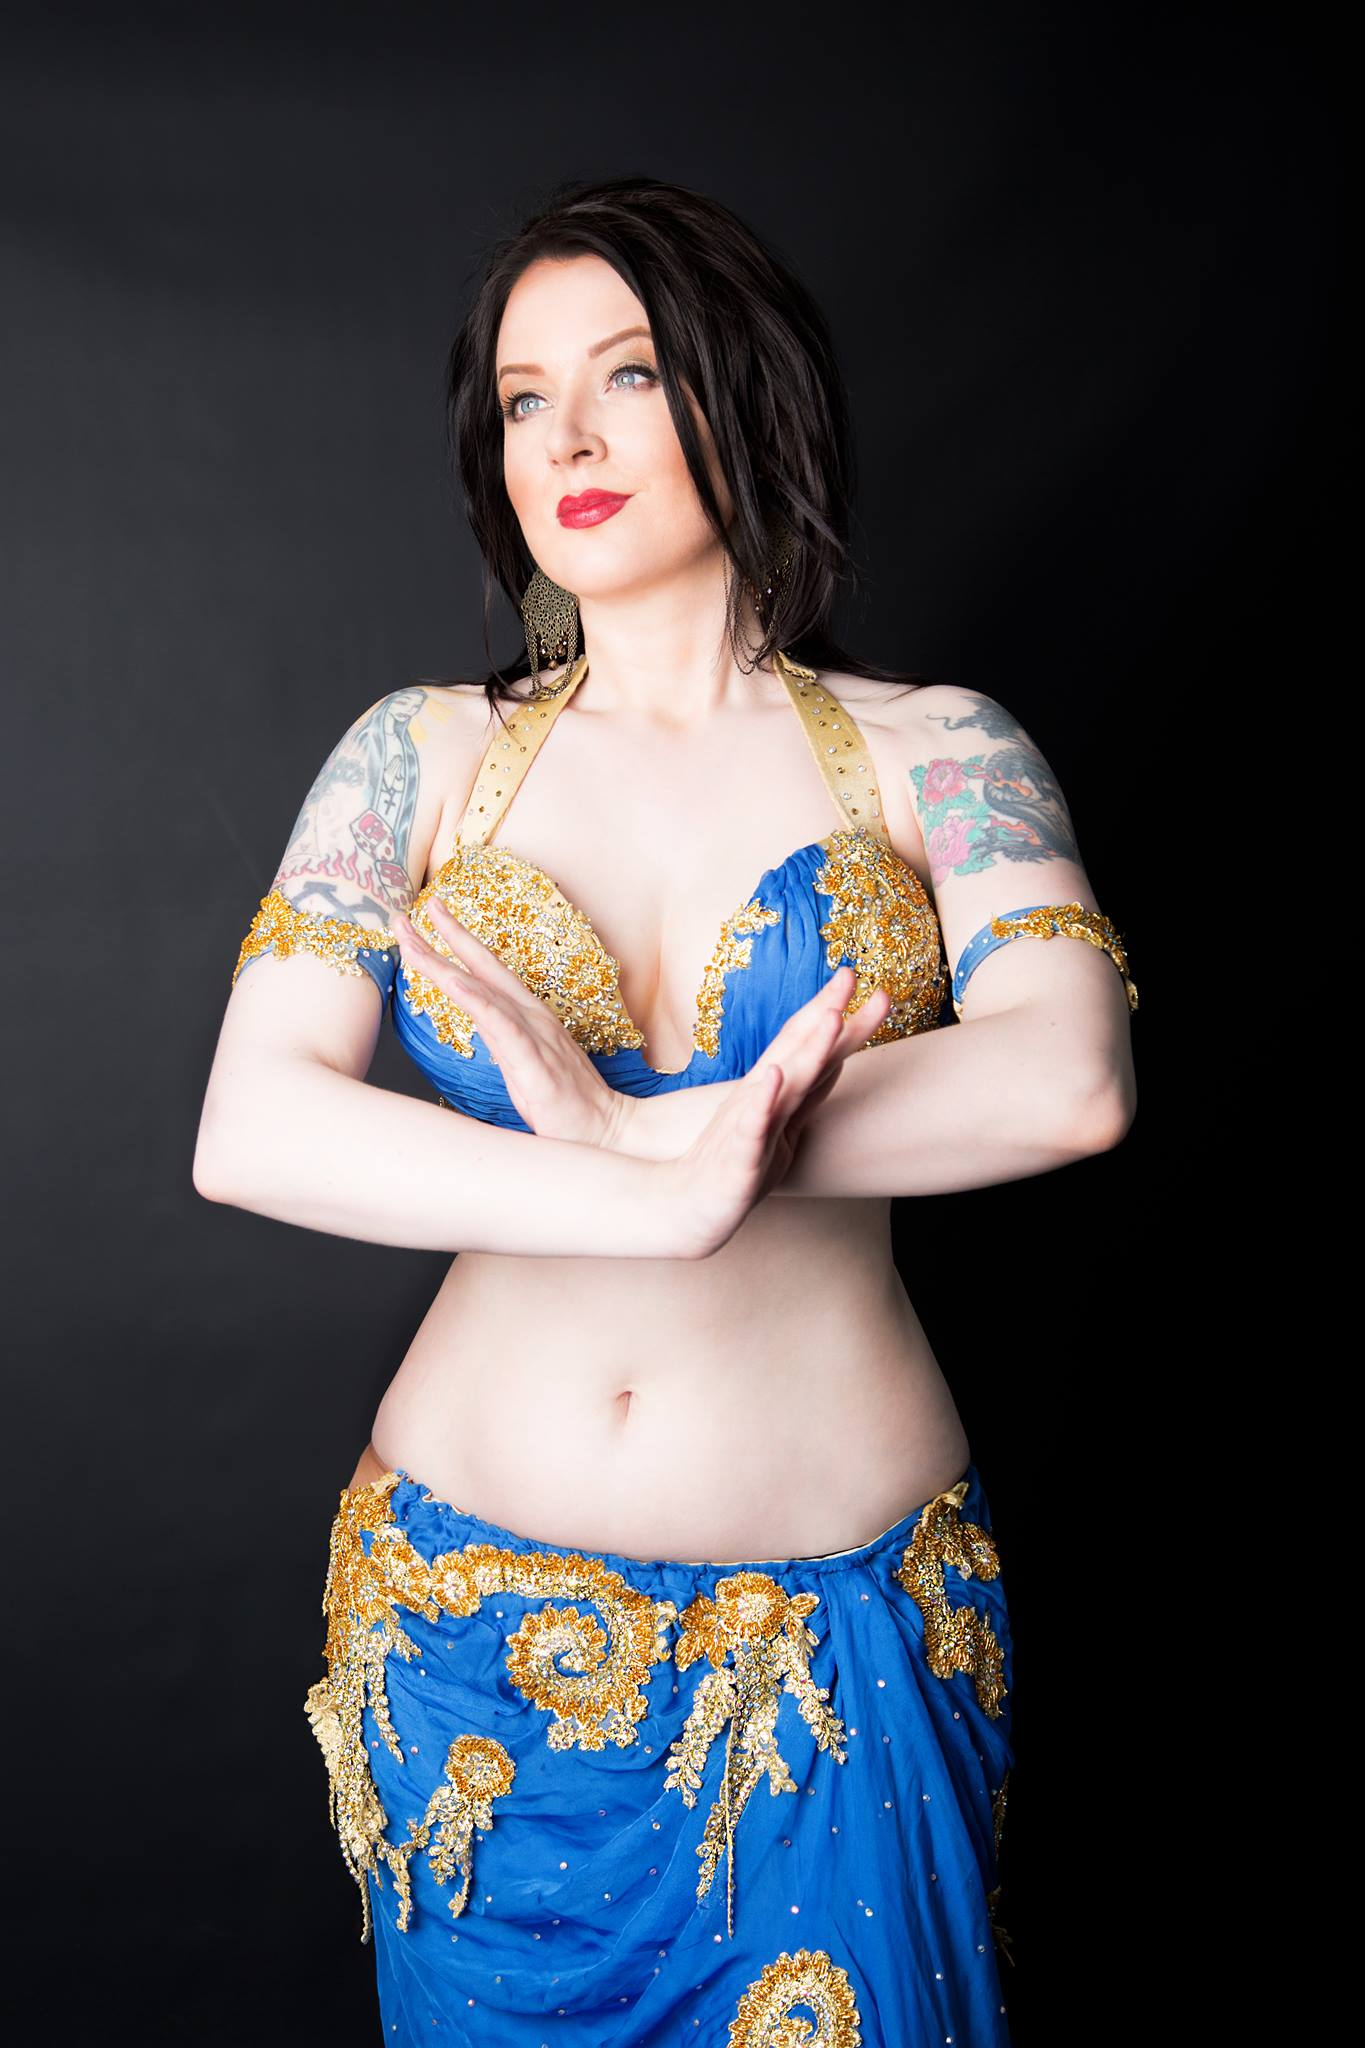 VIctoria professional belly dancer available to book for your event or party